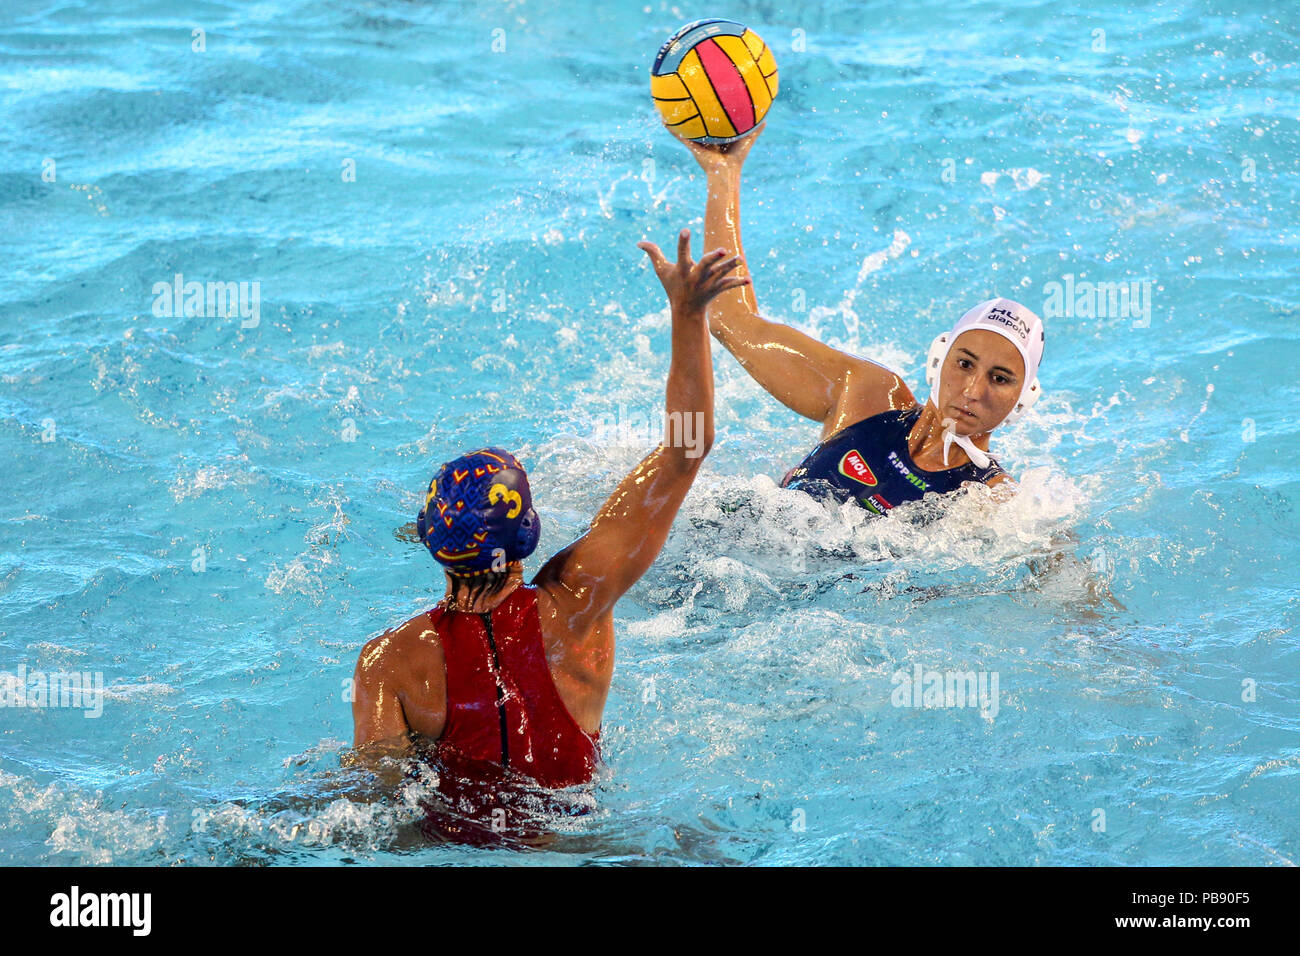 Bernat Picornell Pools, Barcelona, Spain. 27th July, 2018. 33rd European Womens Water Polo Championships, 3rd place playoff, Spain versus Hungary; A goal scoring chance for Anna Krisztina Illes of Hungary Credit: Action Plus Sports/Alamy Live News - Stock Image